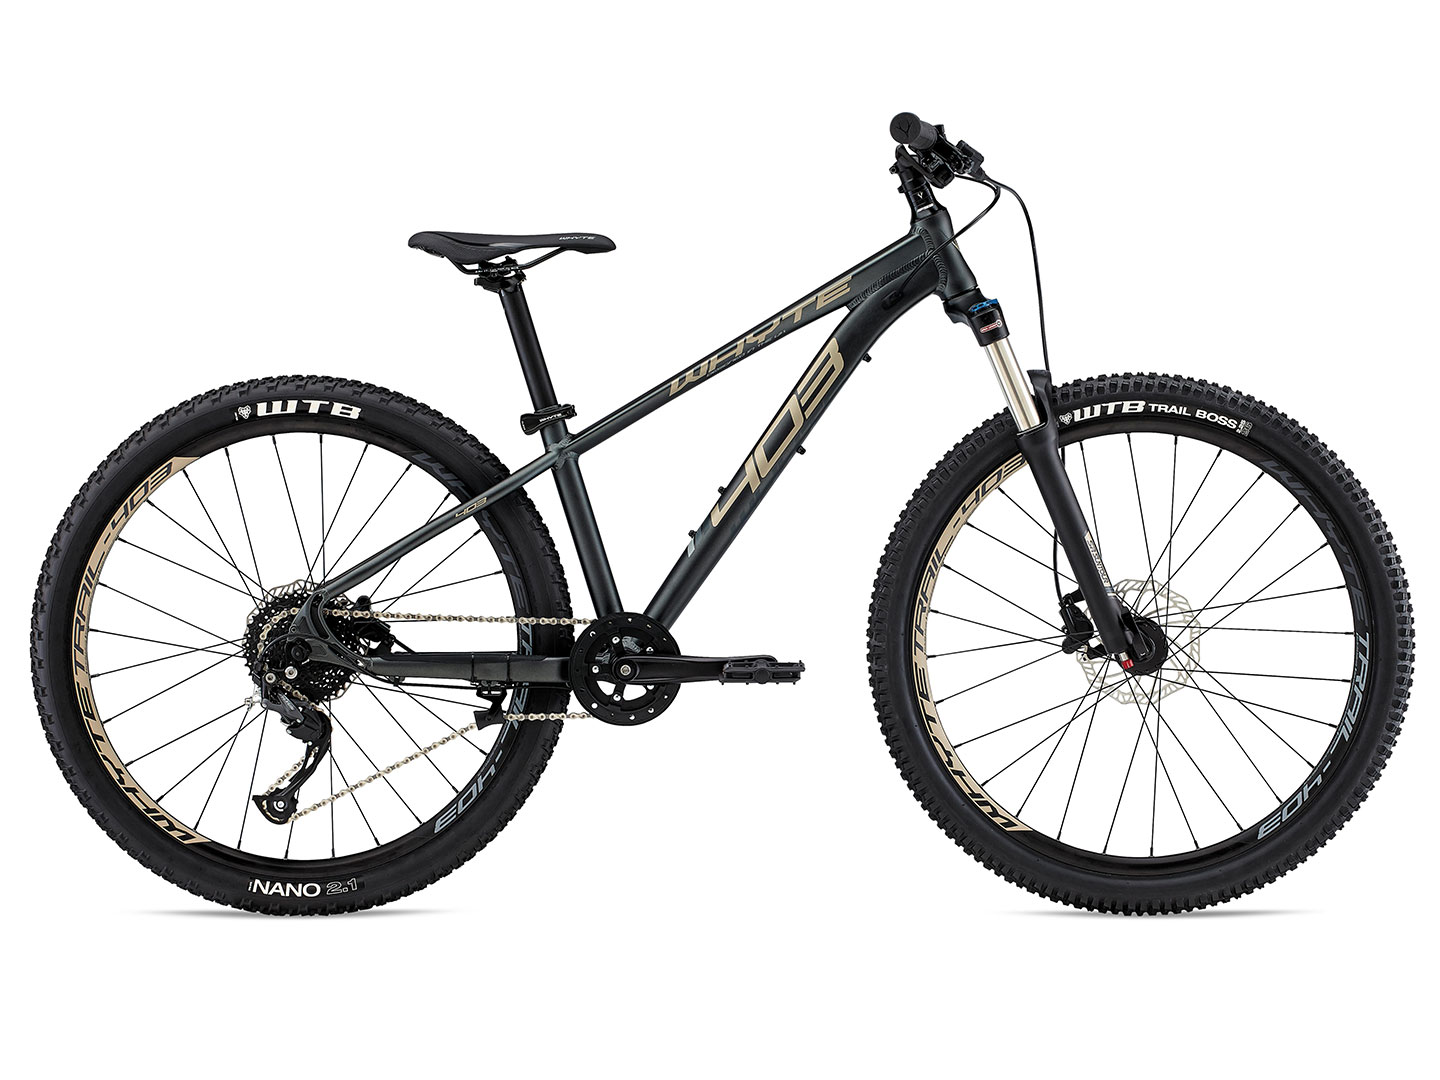 Limited Edition Whyte 403 Kids Hardtail For Sale At Bikestyle